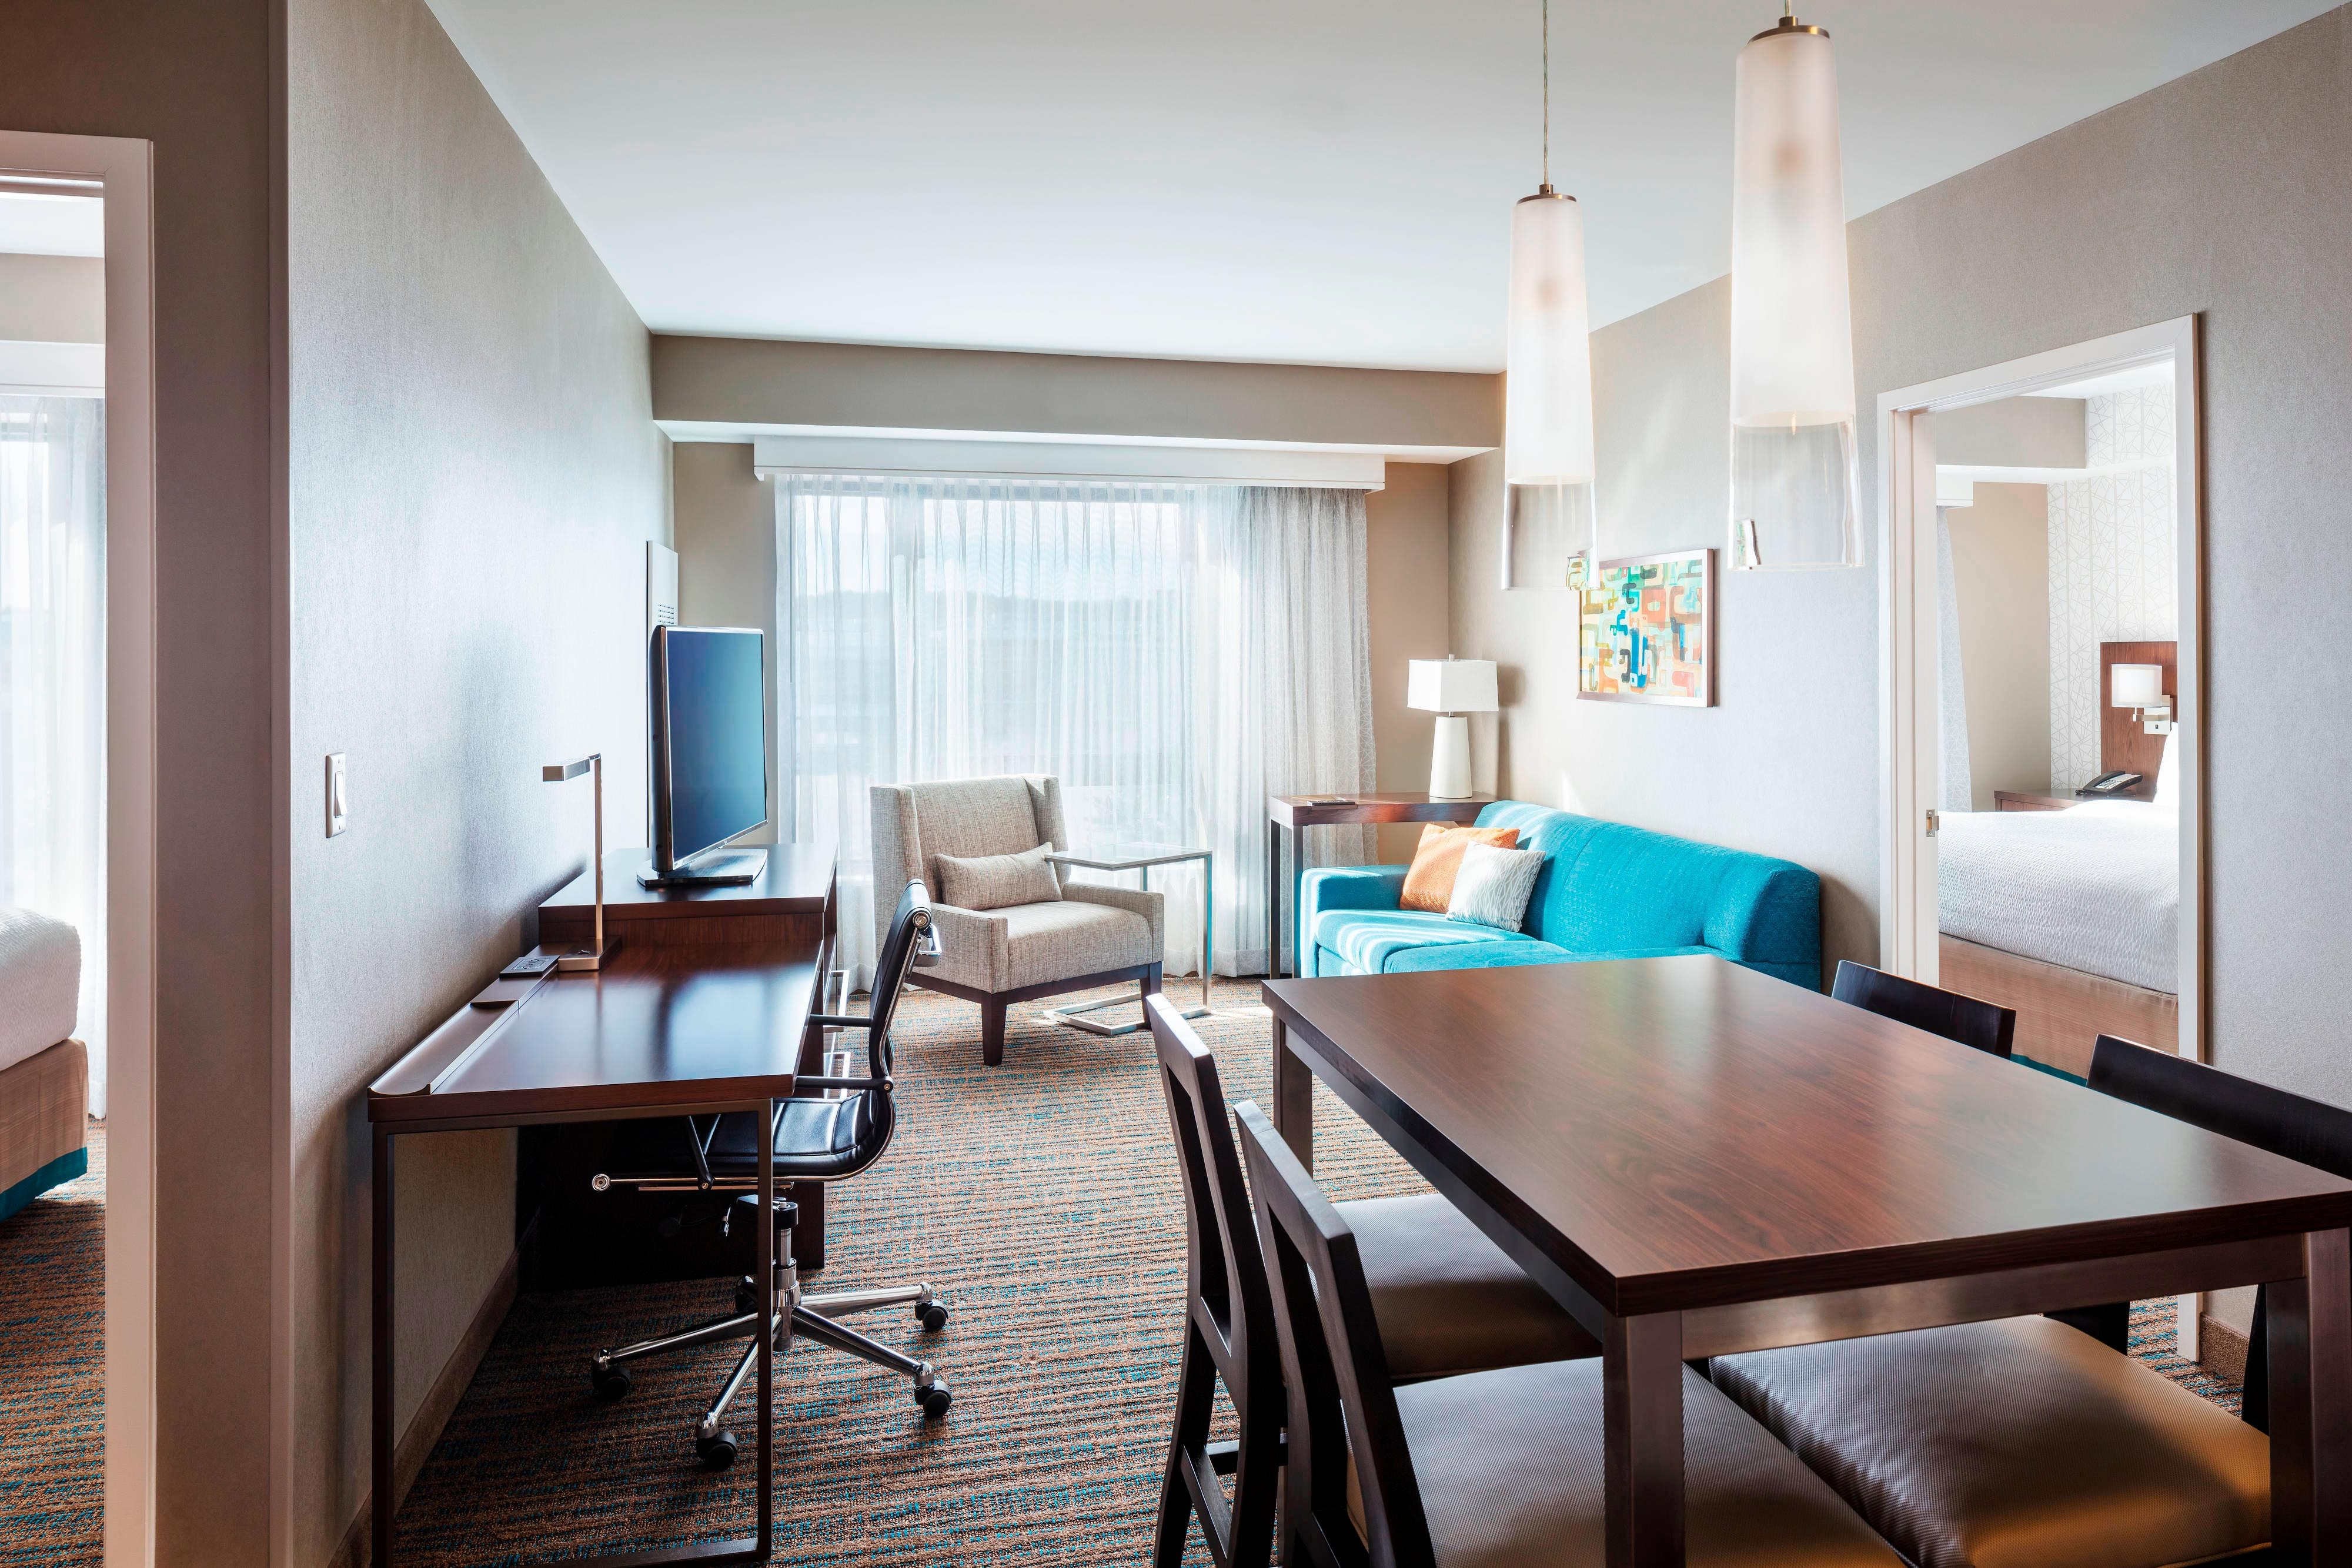 Hotel suites in burlington ma with kitchens residence - Hotels with 2 bedroom suites in boston ma ...